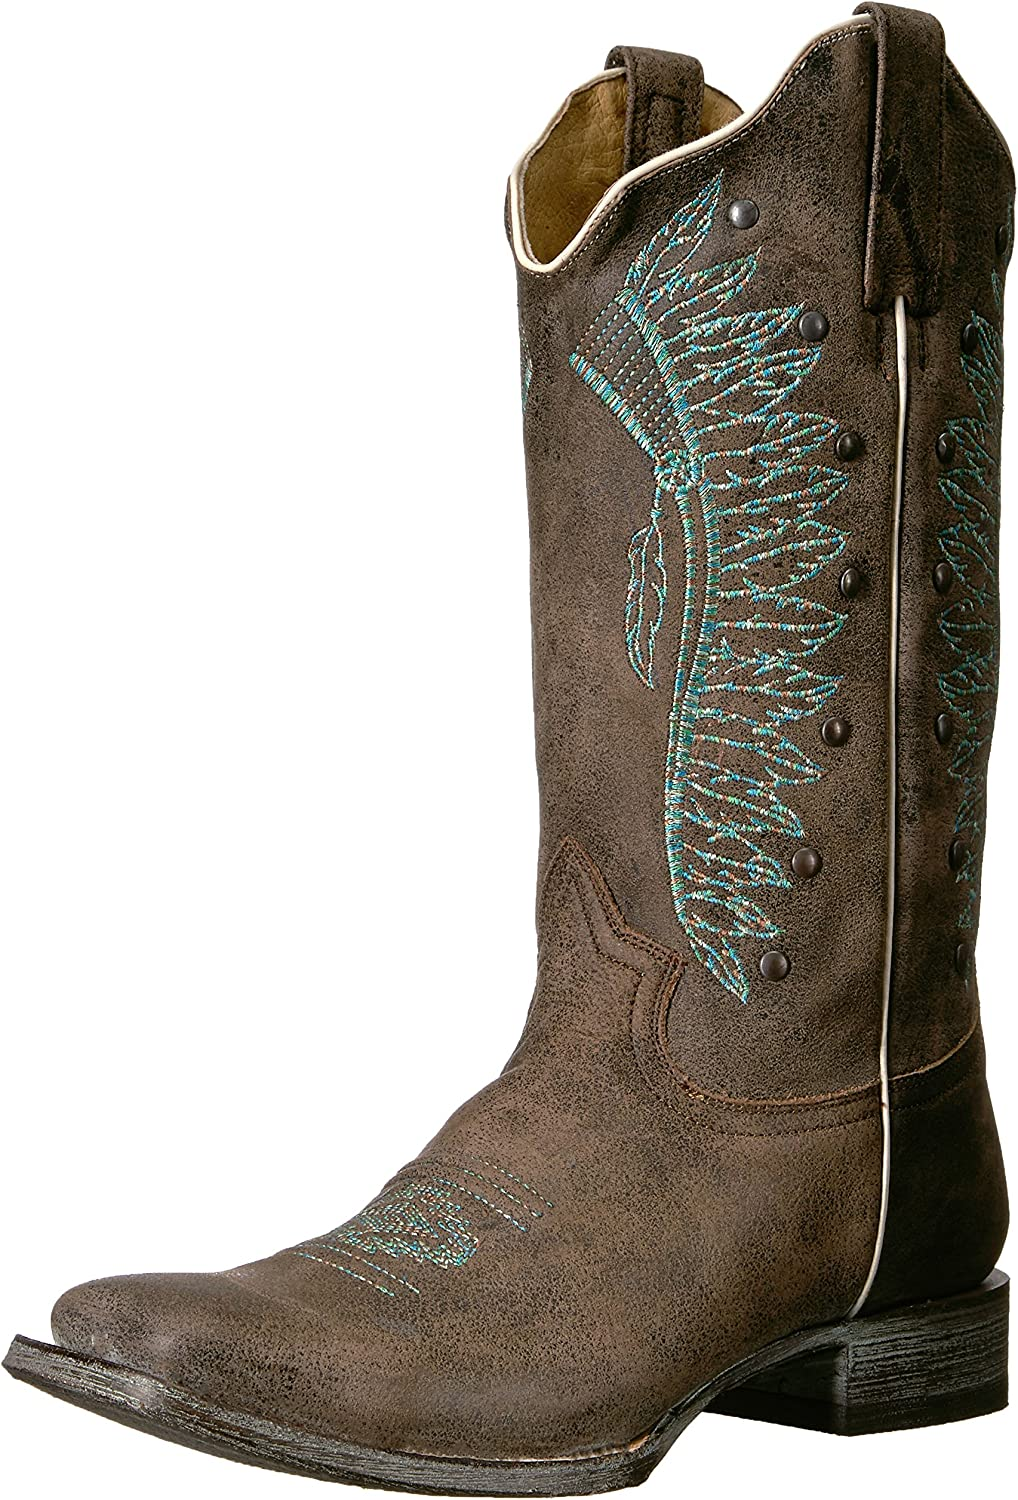 Roper Women's Chiefs Western Boot